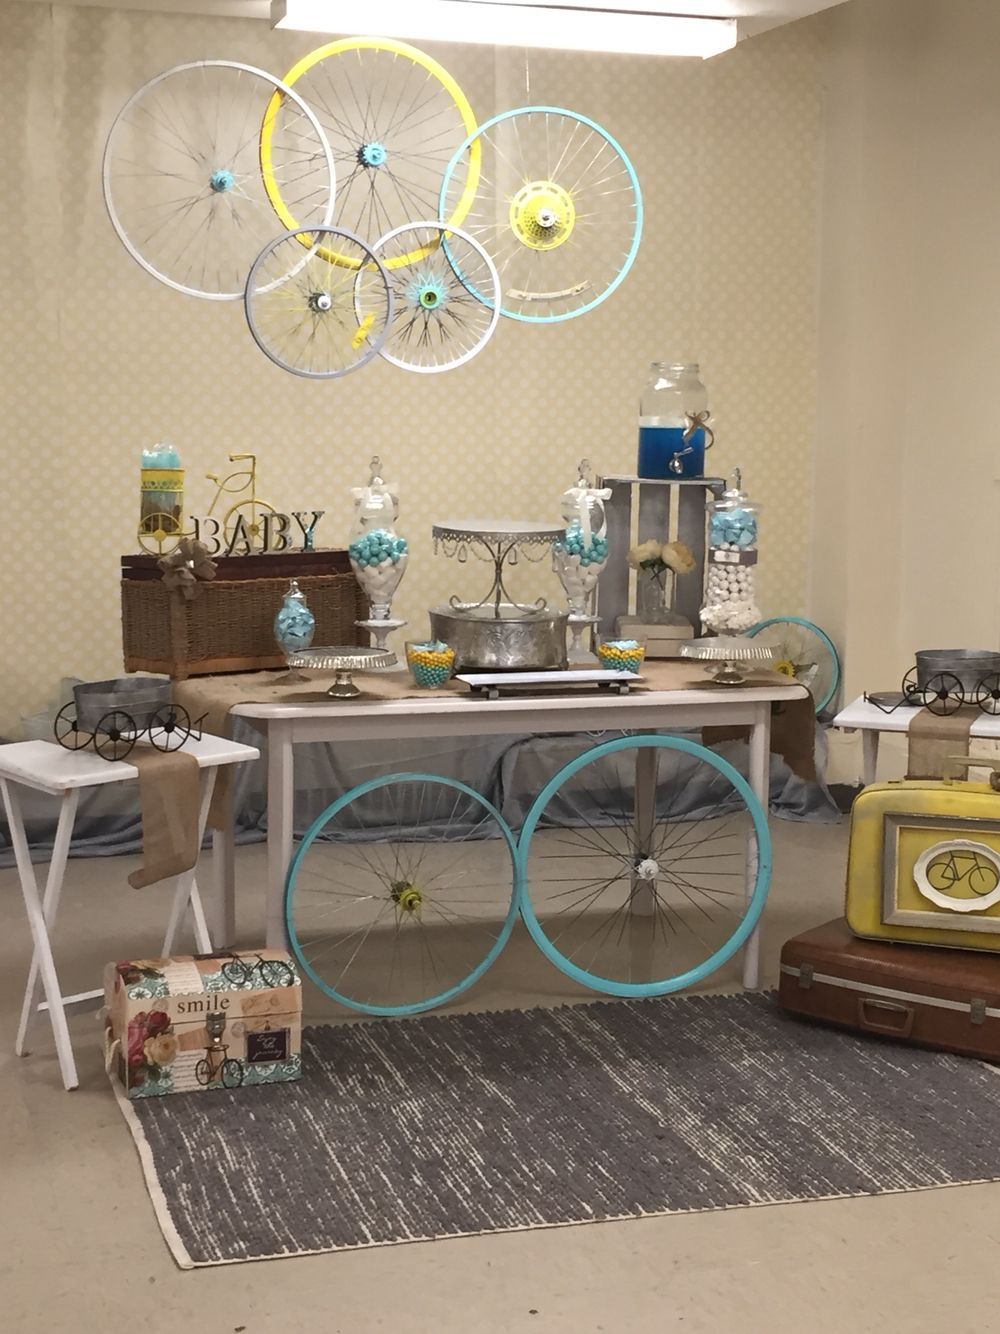 Baby Boy Vintage Bicycle Shower R Amp O Decor In 2019